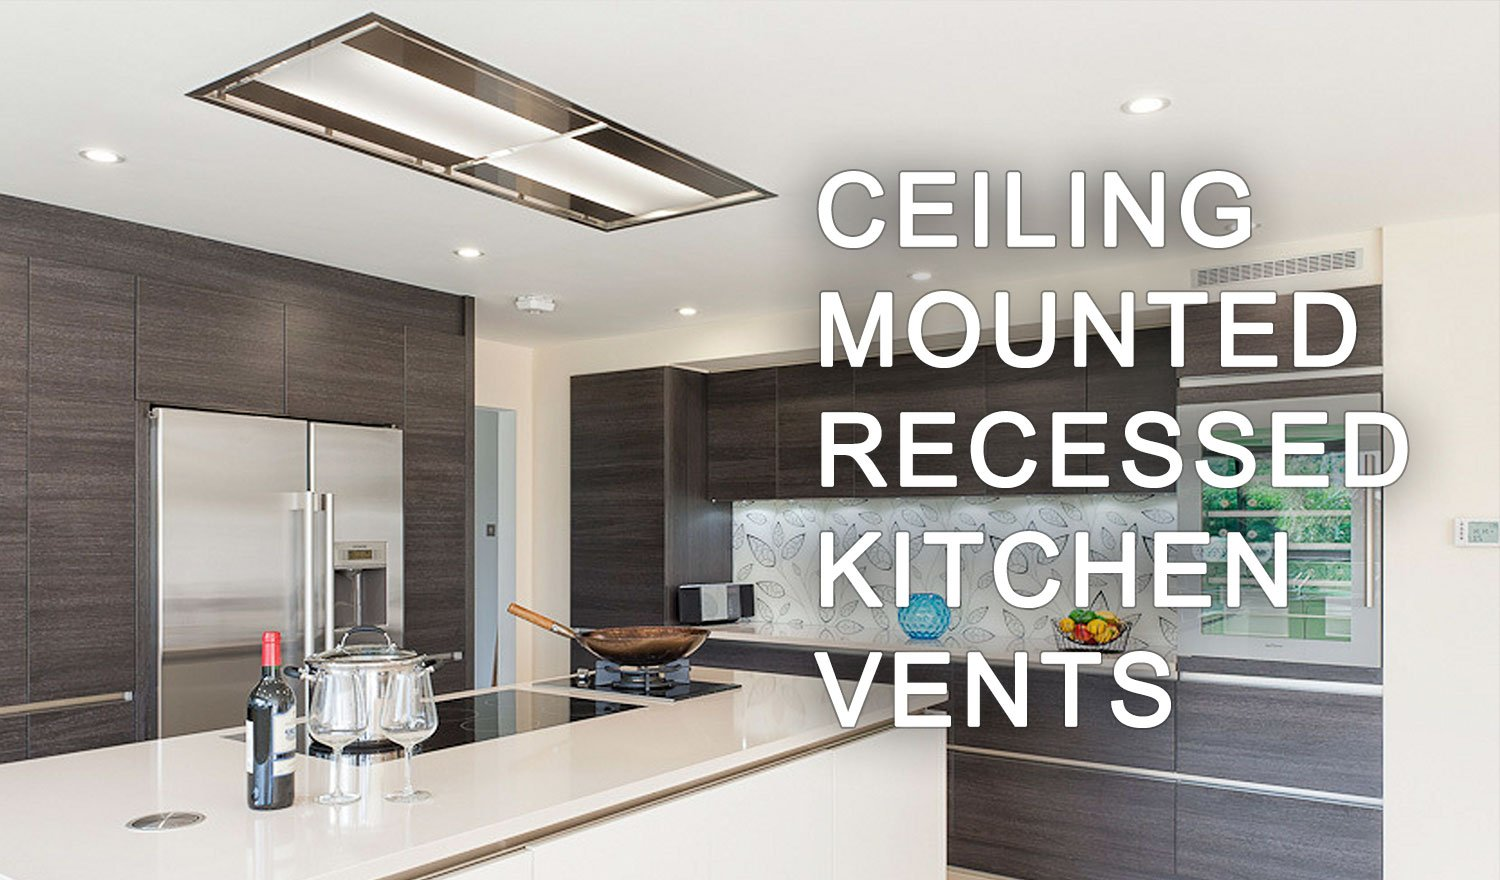 Ceiling Mounted Recessed Kitchen Vents